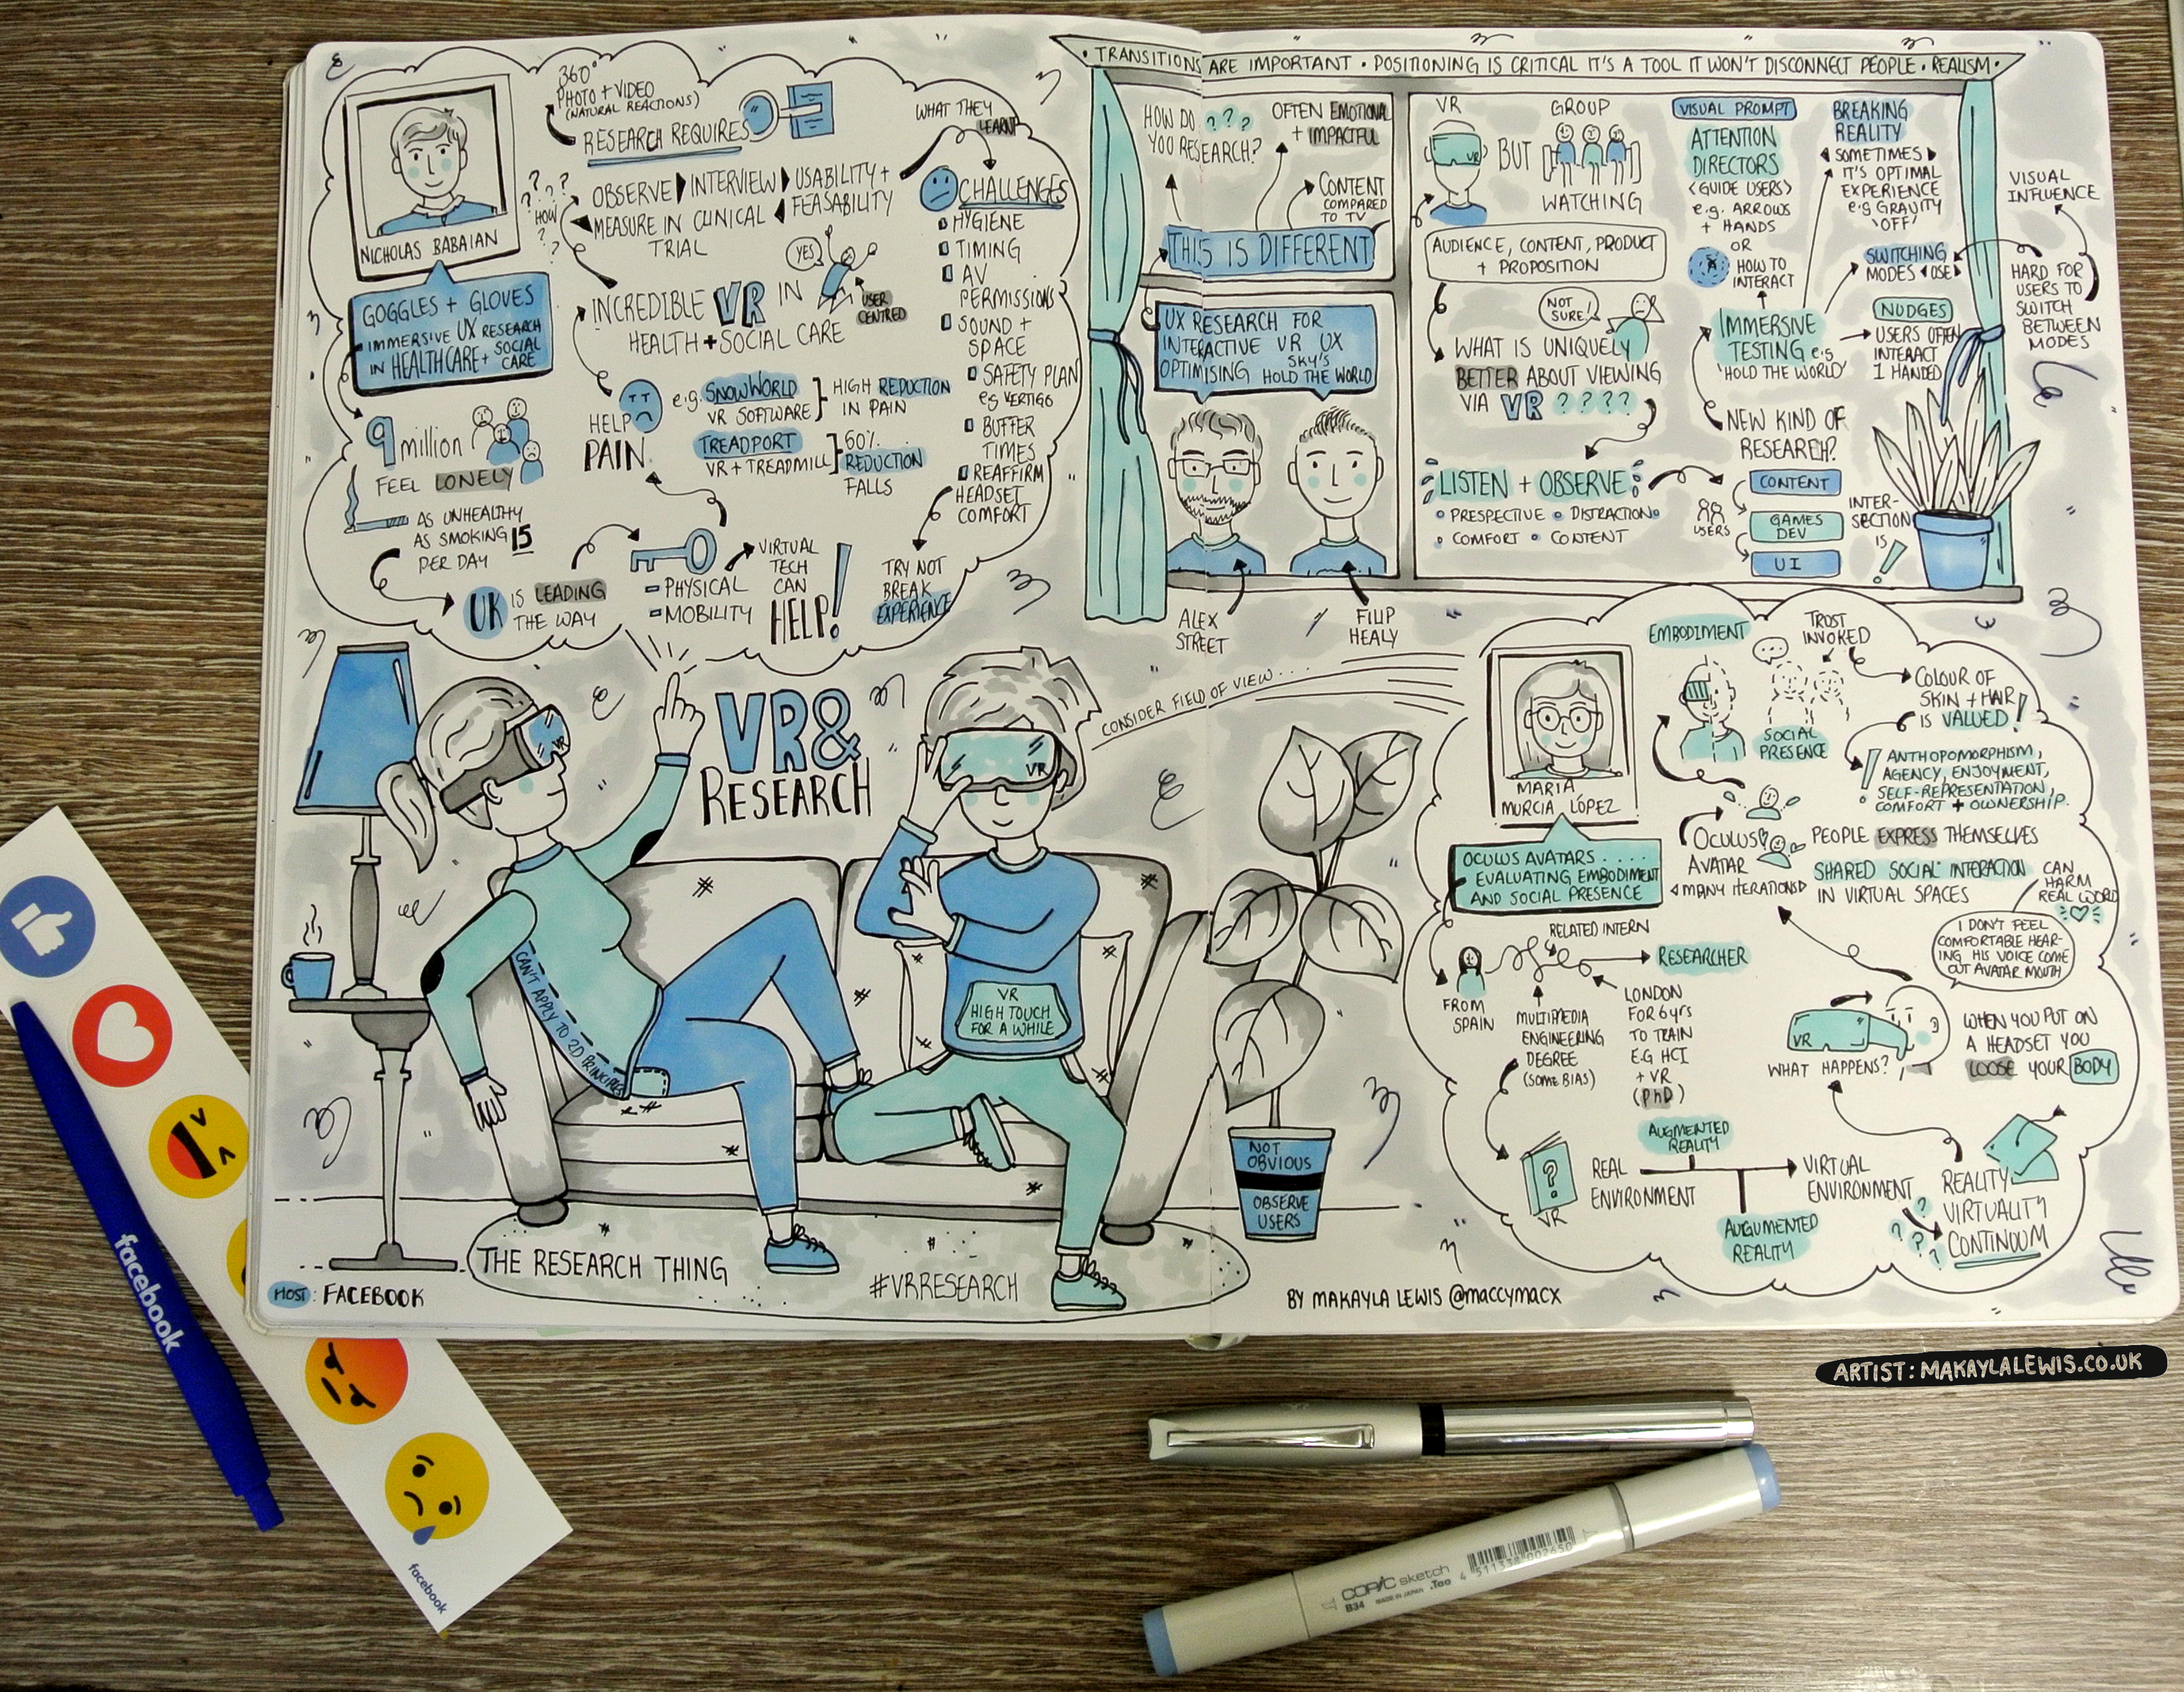 Sketchnotes from The Research Thing 'VR & Research' feat. Nicholas Babaian, Maria Murcia López, Filip Healy, and Alex Street hosted at Facebook London